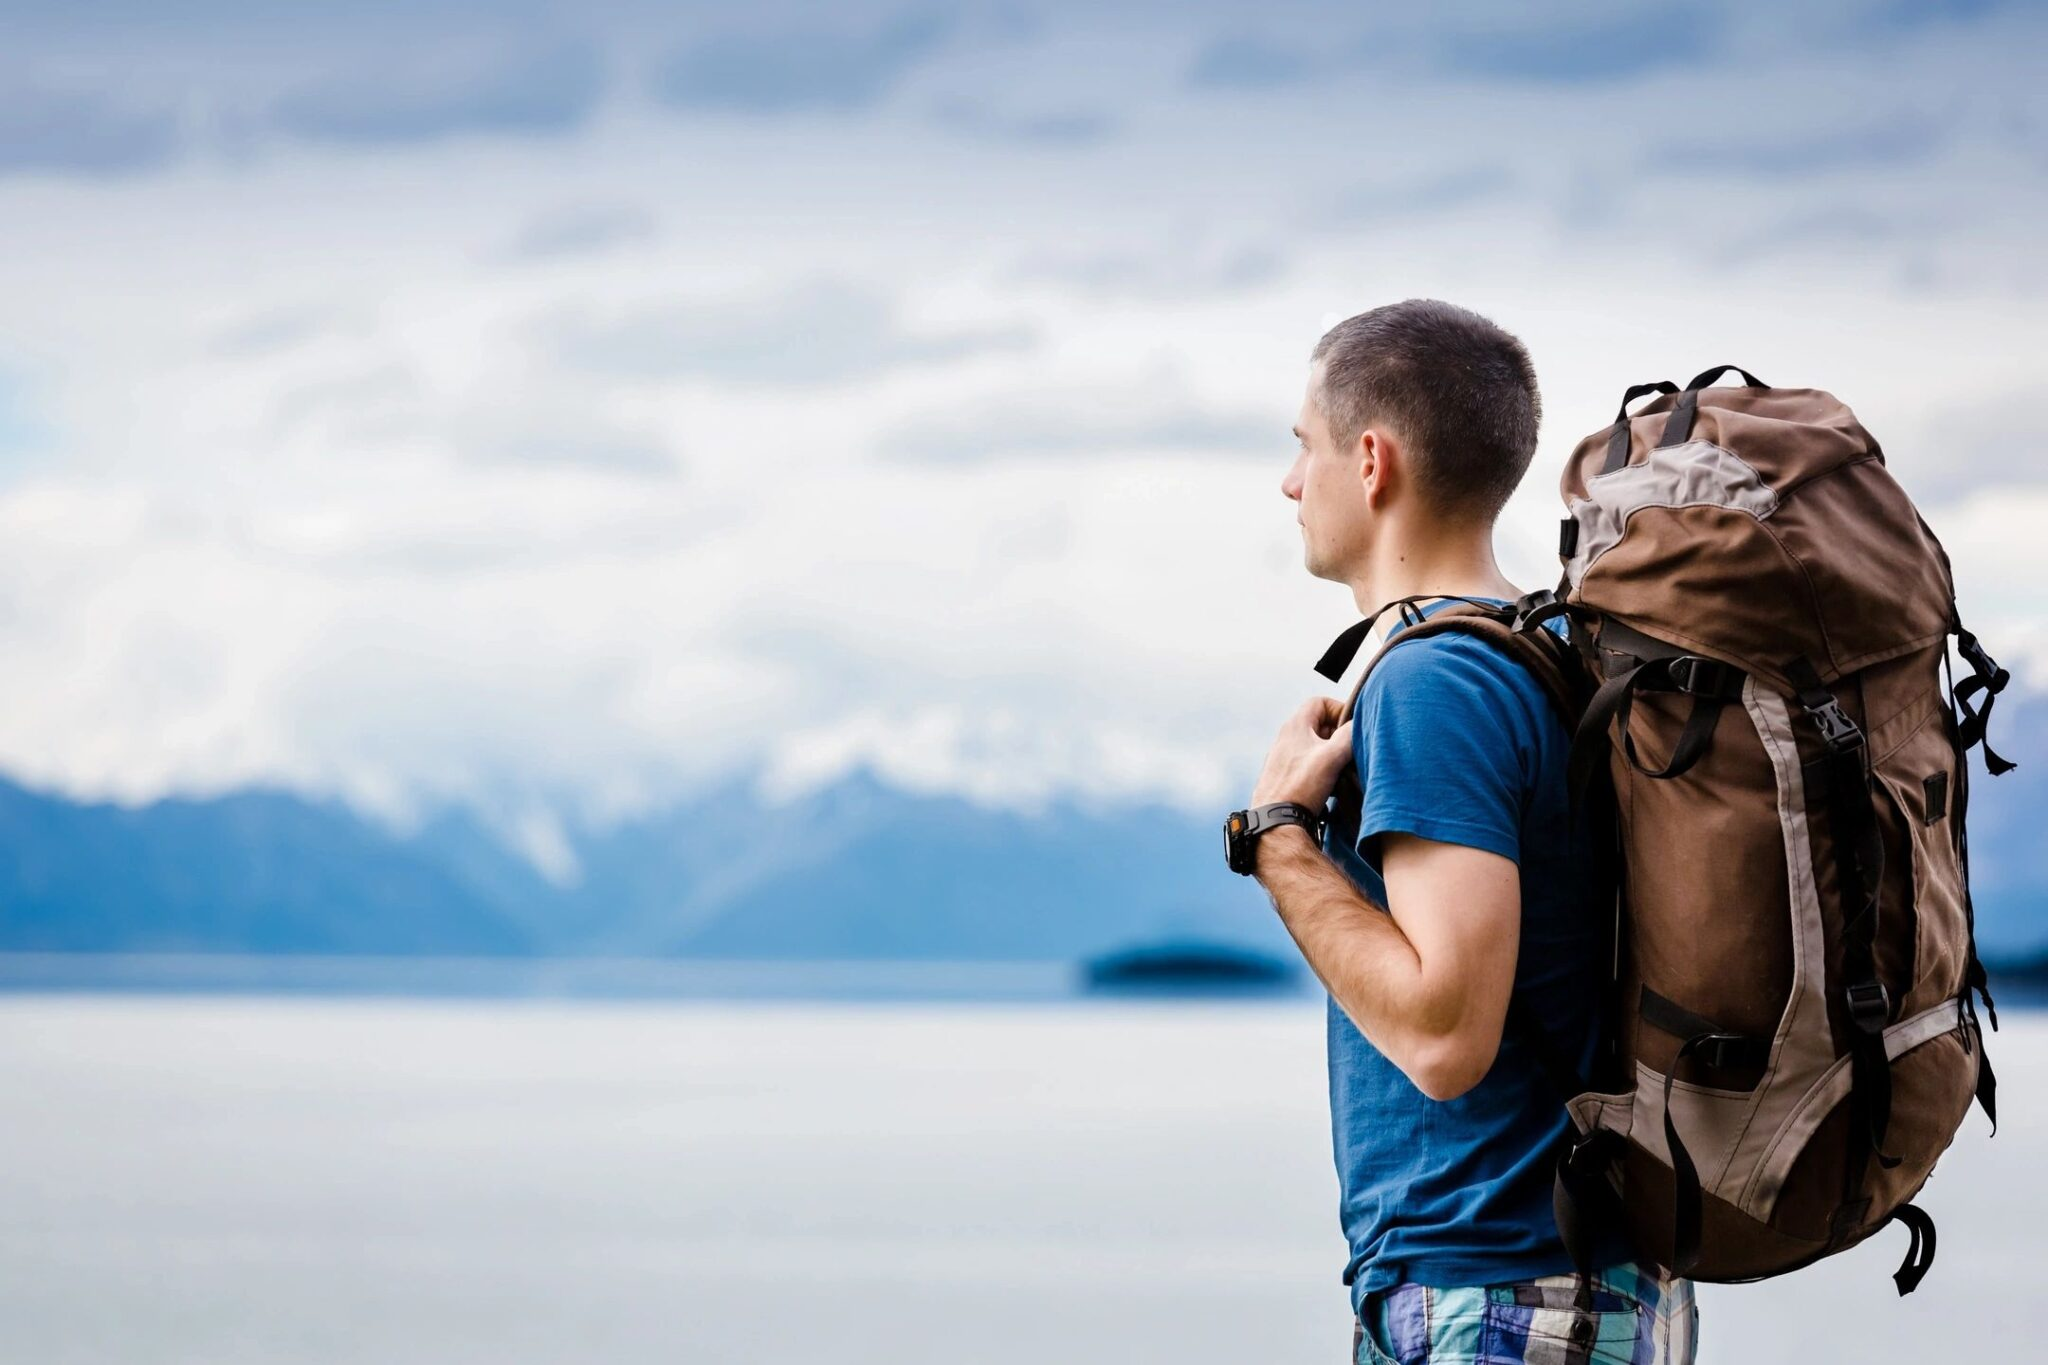 Hikers: Calculate your best backpack weight